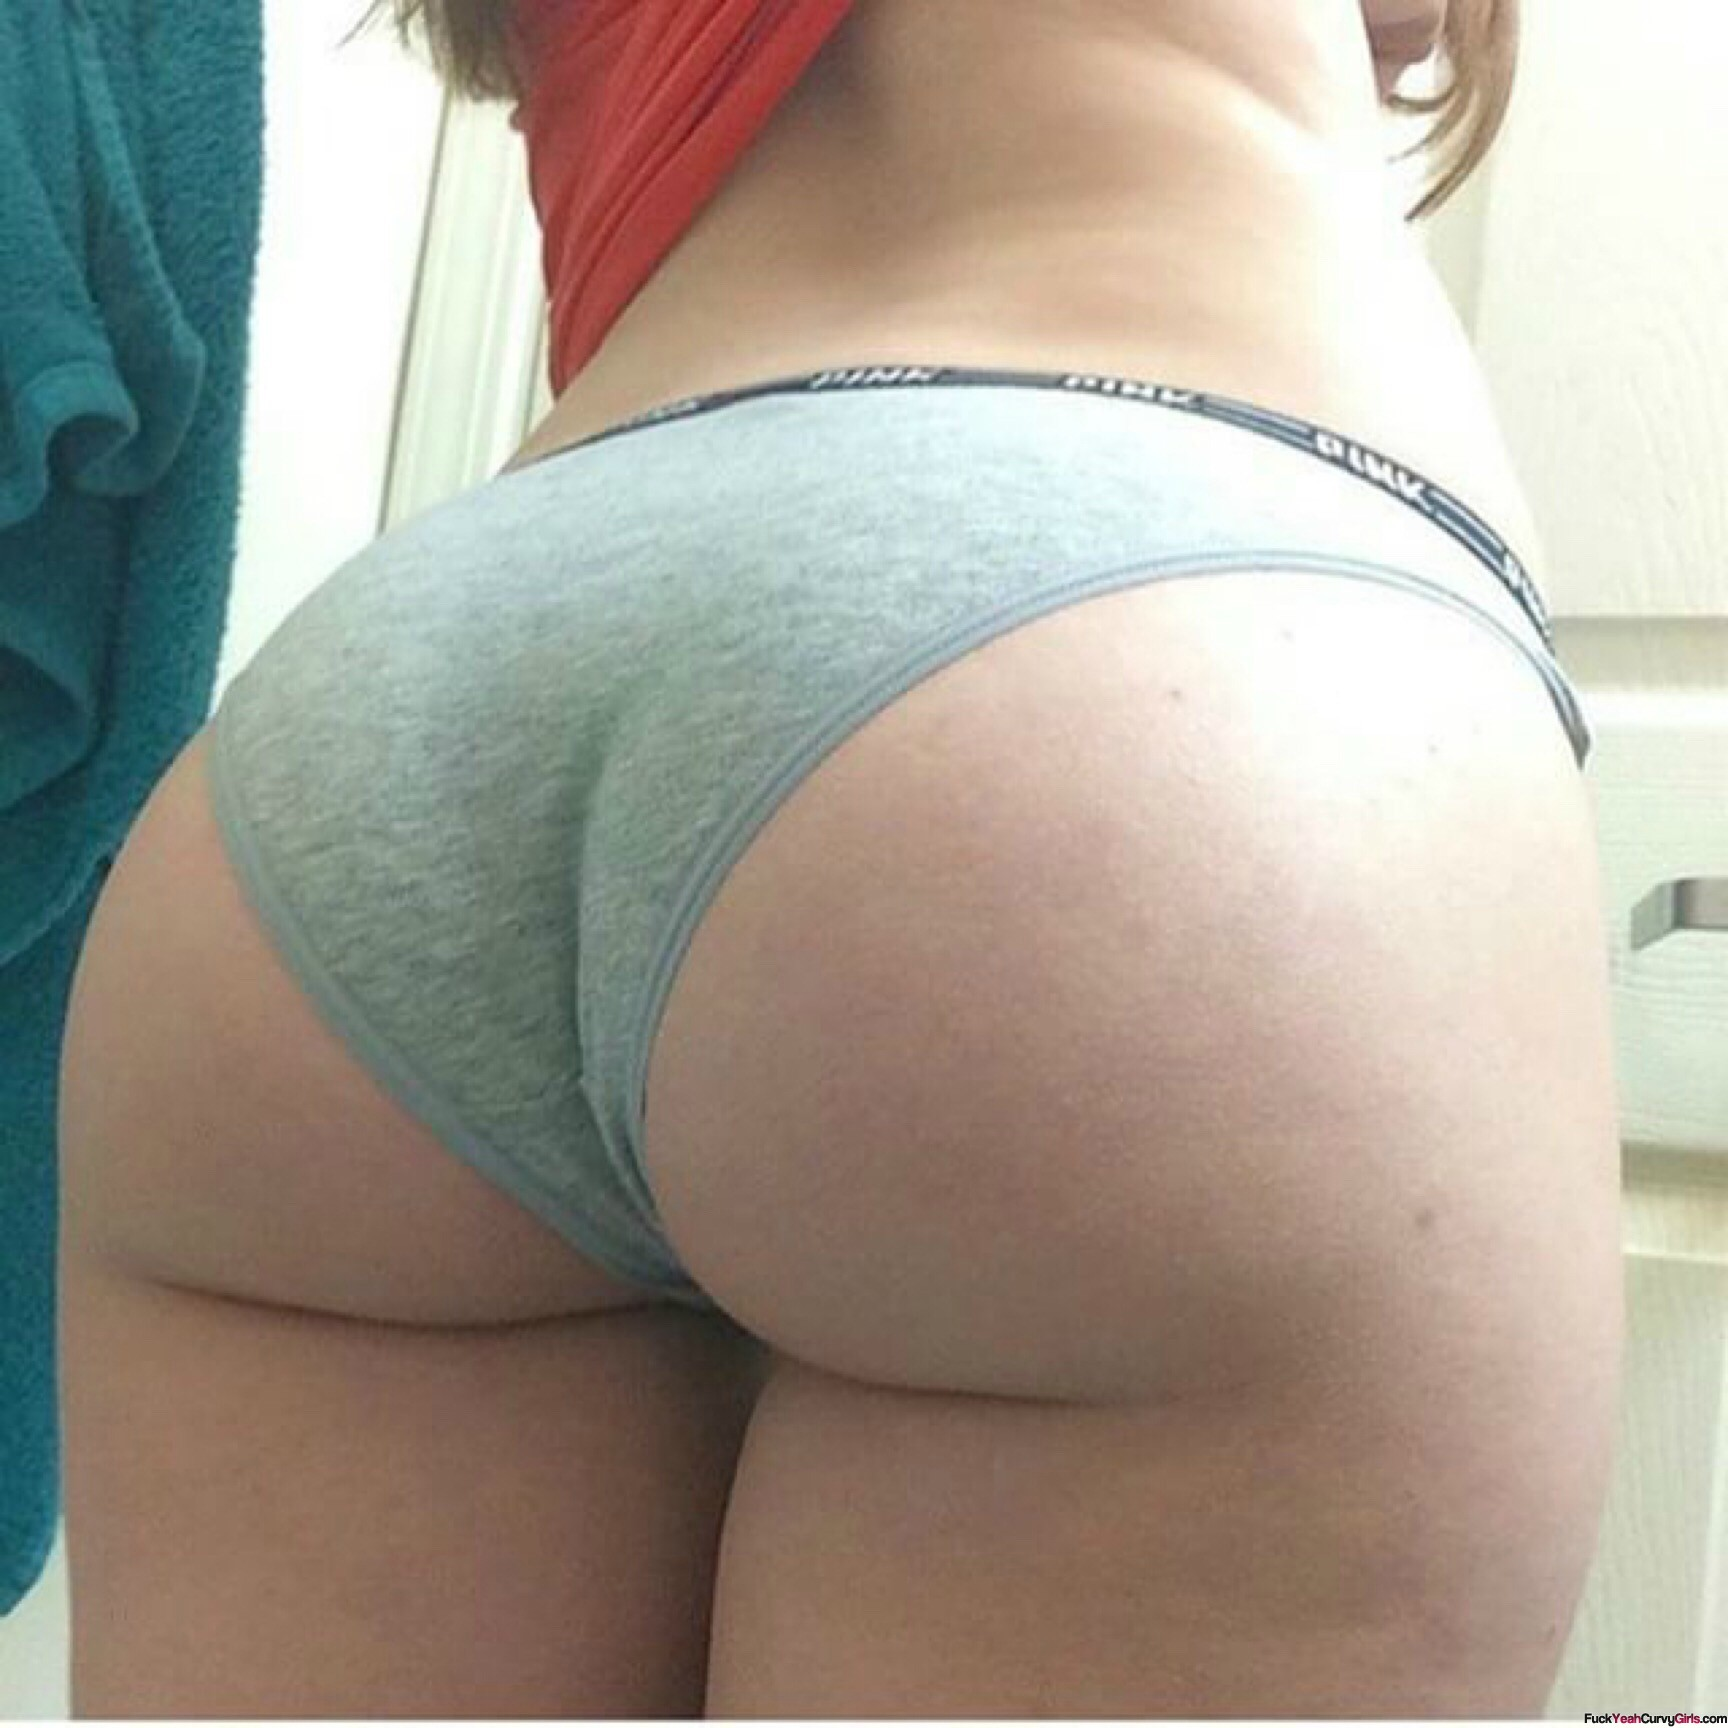 Abstract thinking Hot white girl ass selfie for that